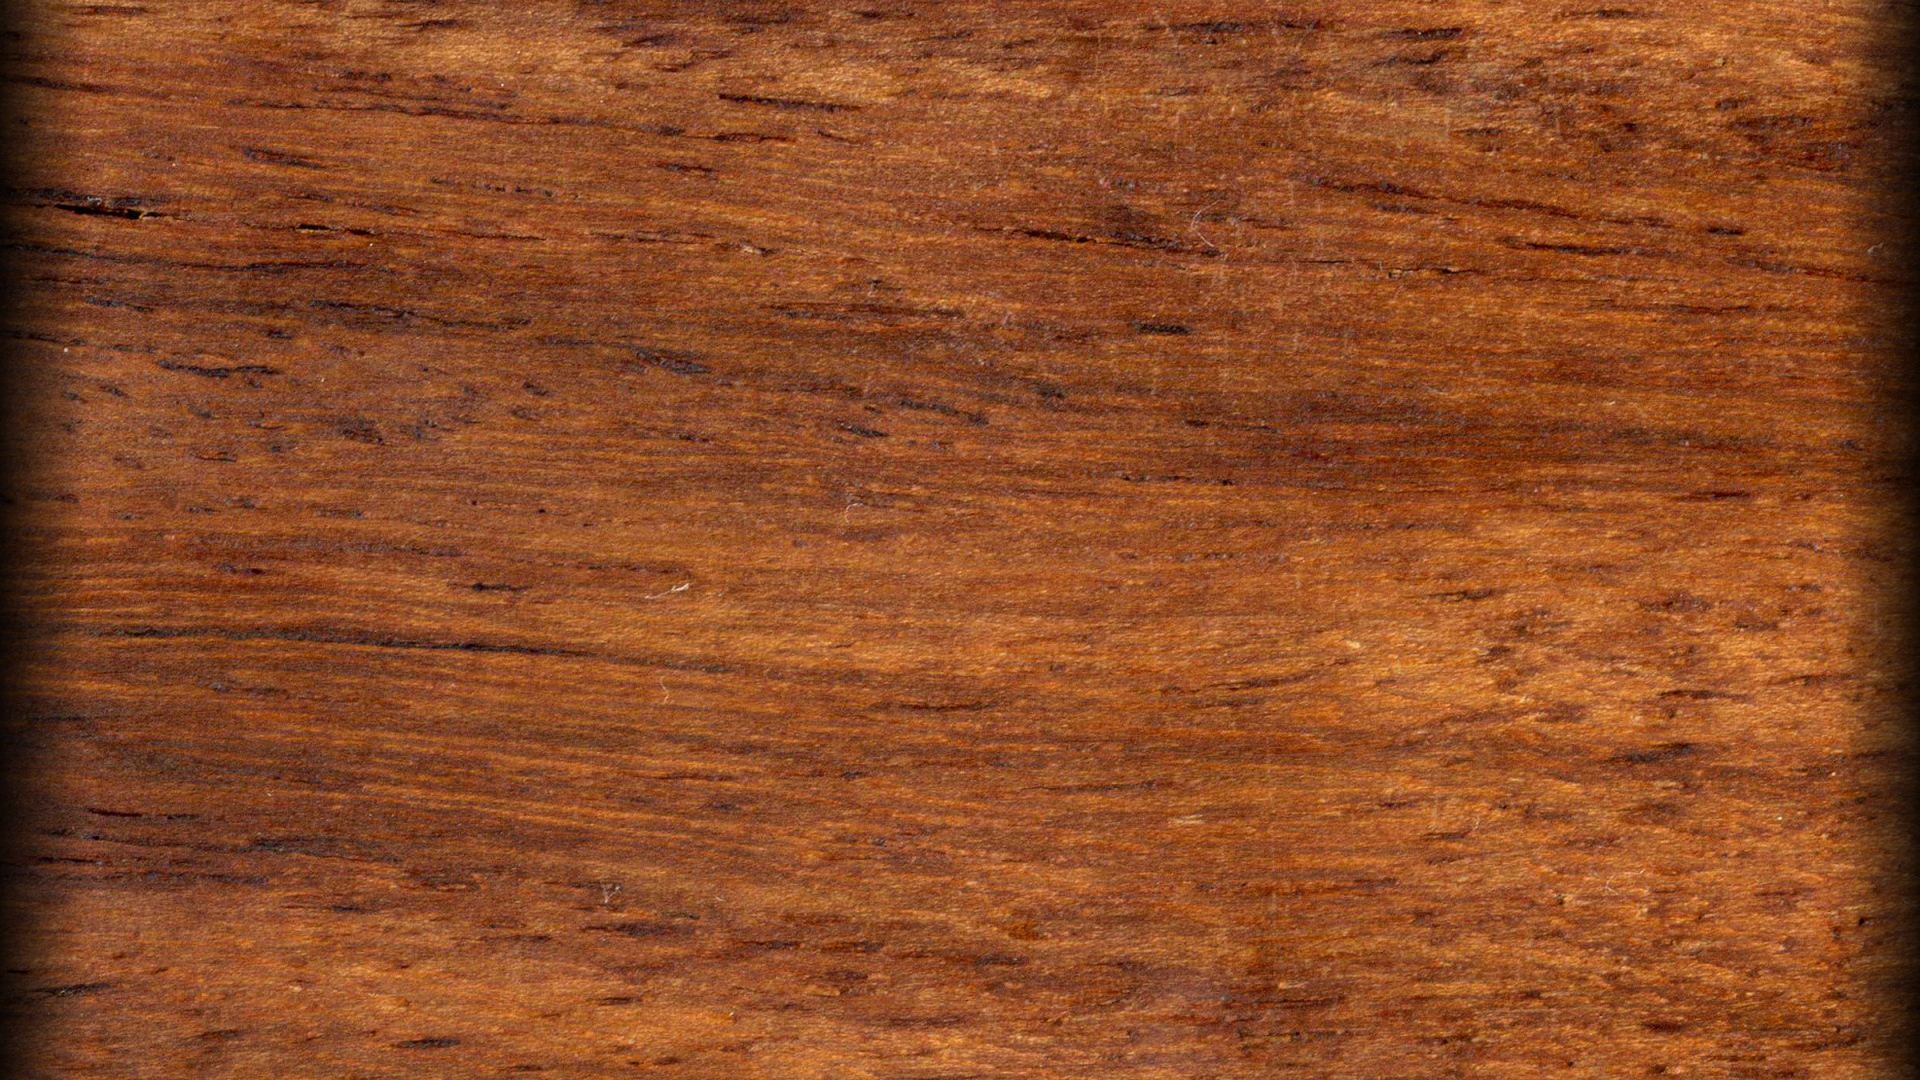 Download Wallpaper 1920x1080 wood, background, texture Full HD 1080p ...